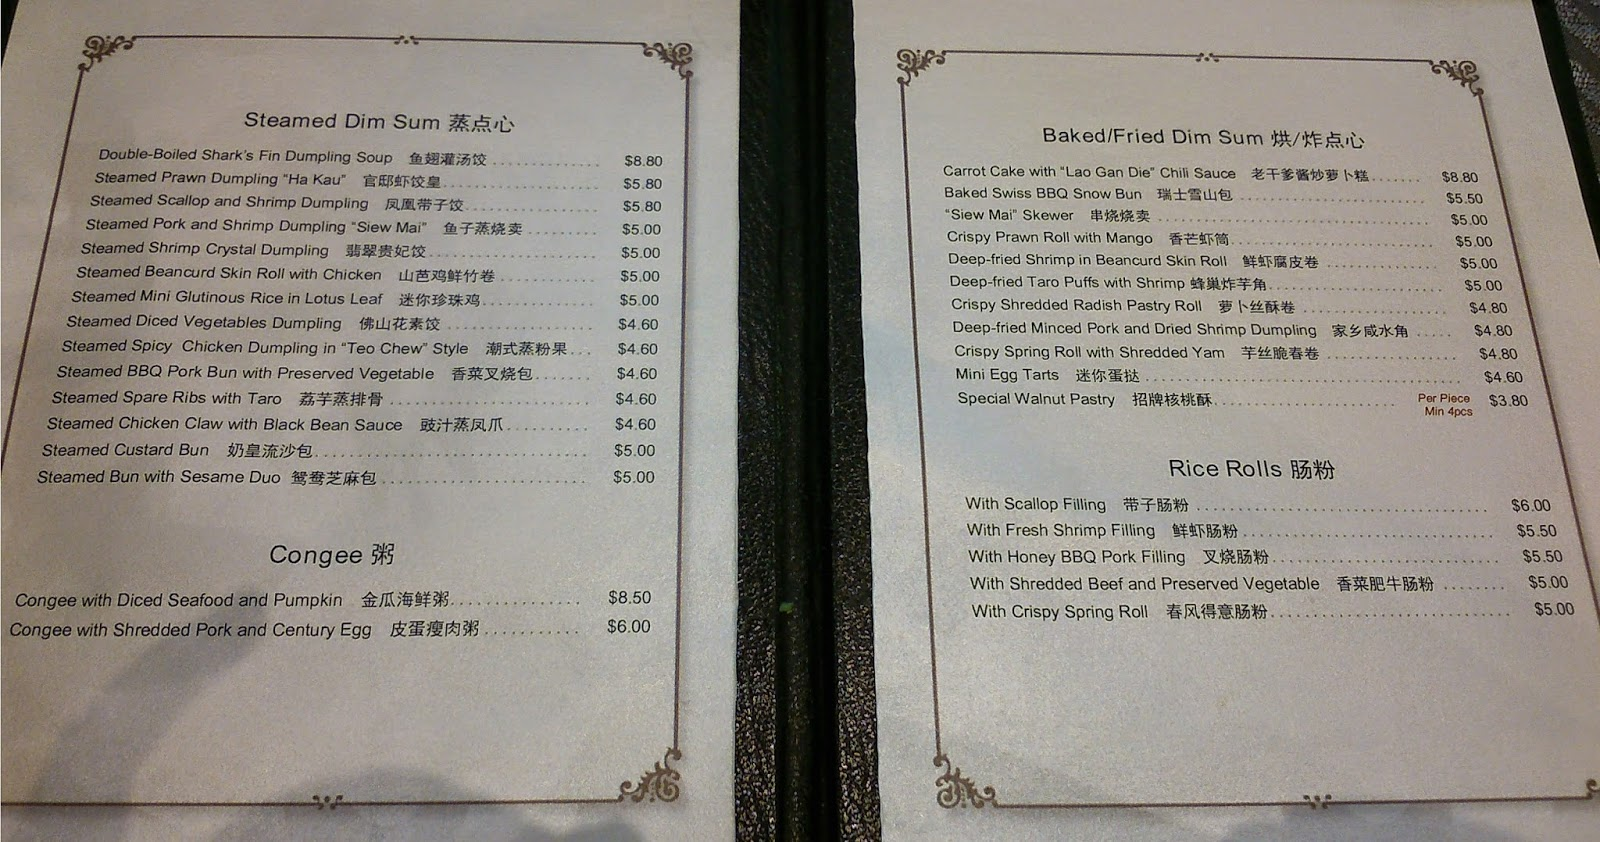 Imperial treasure mbs ala carte menu